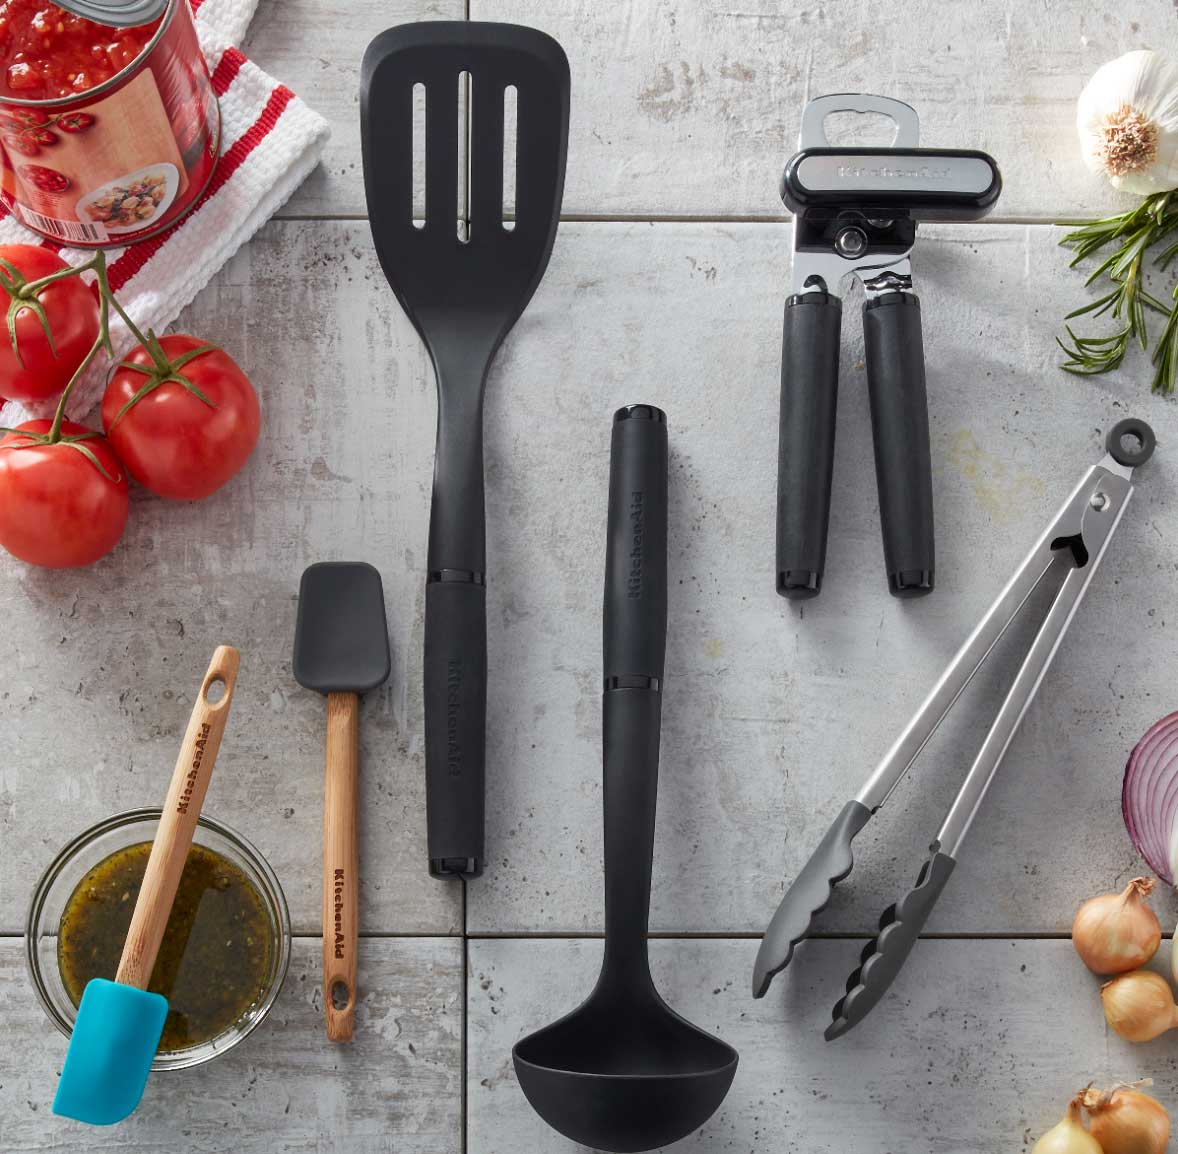 Walmart Just Launched an Exclusive Line of KitchenAid Tools